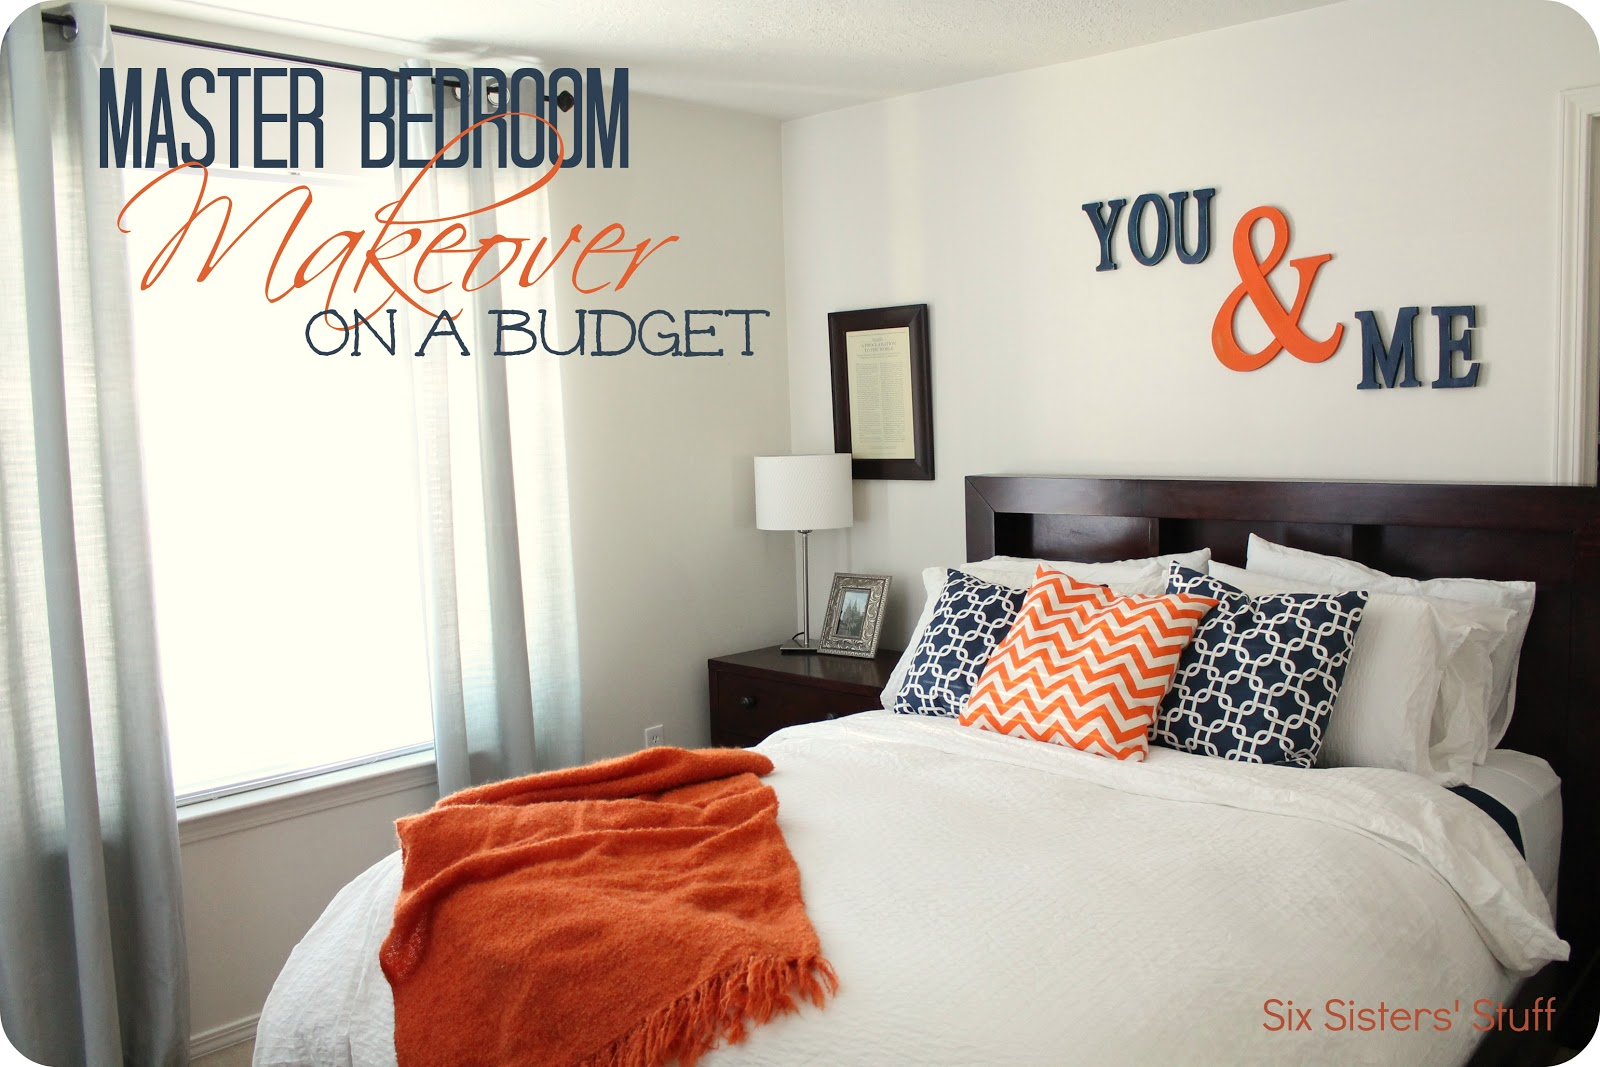 Beautiful Bedrooms On A Budget   How To Decorate My Bedroom On A Budget  Decorate Bedroom